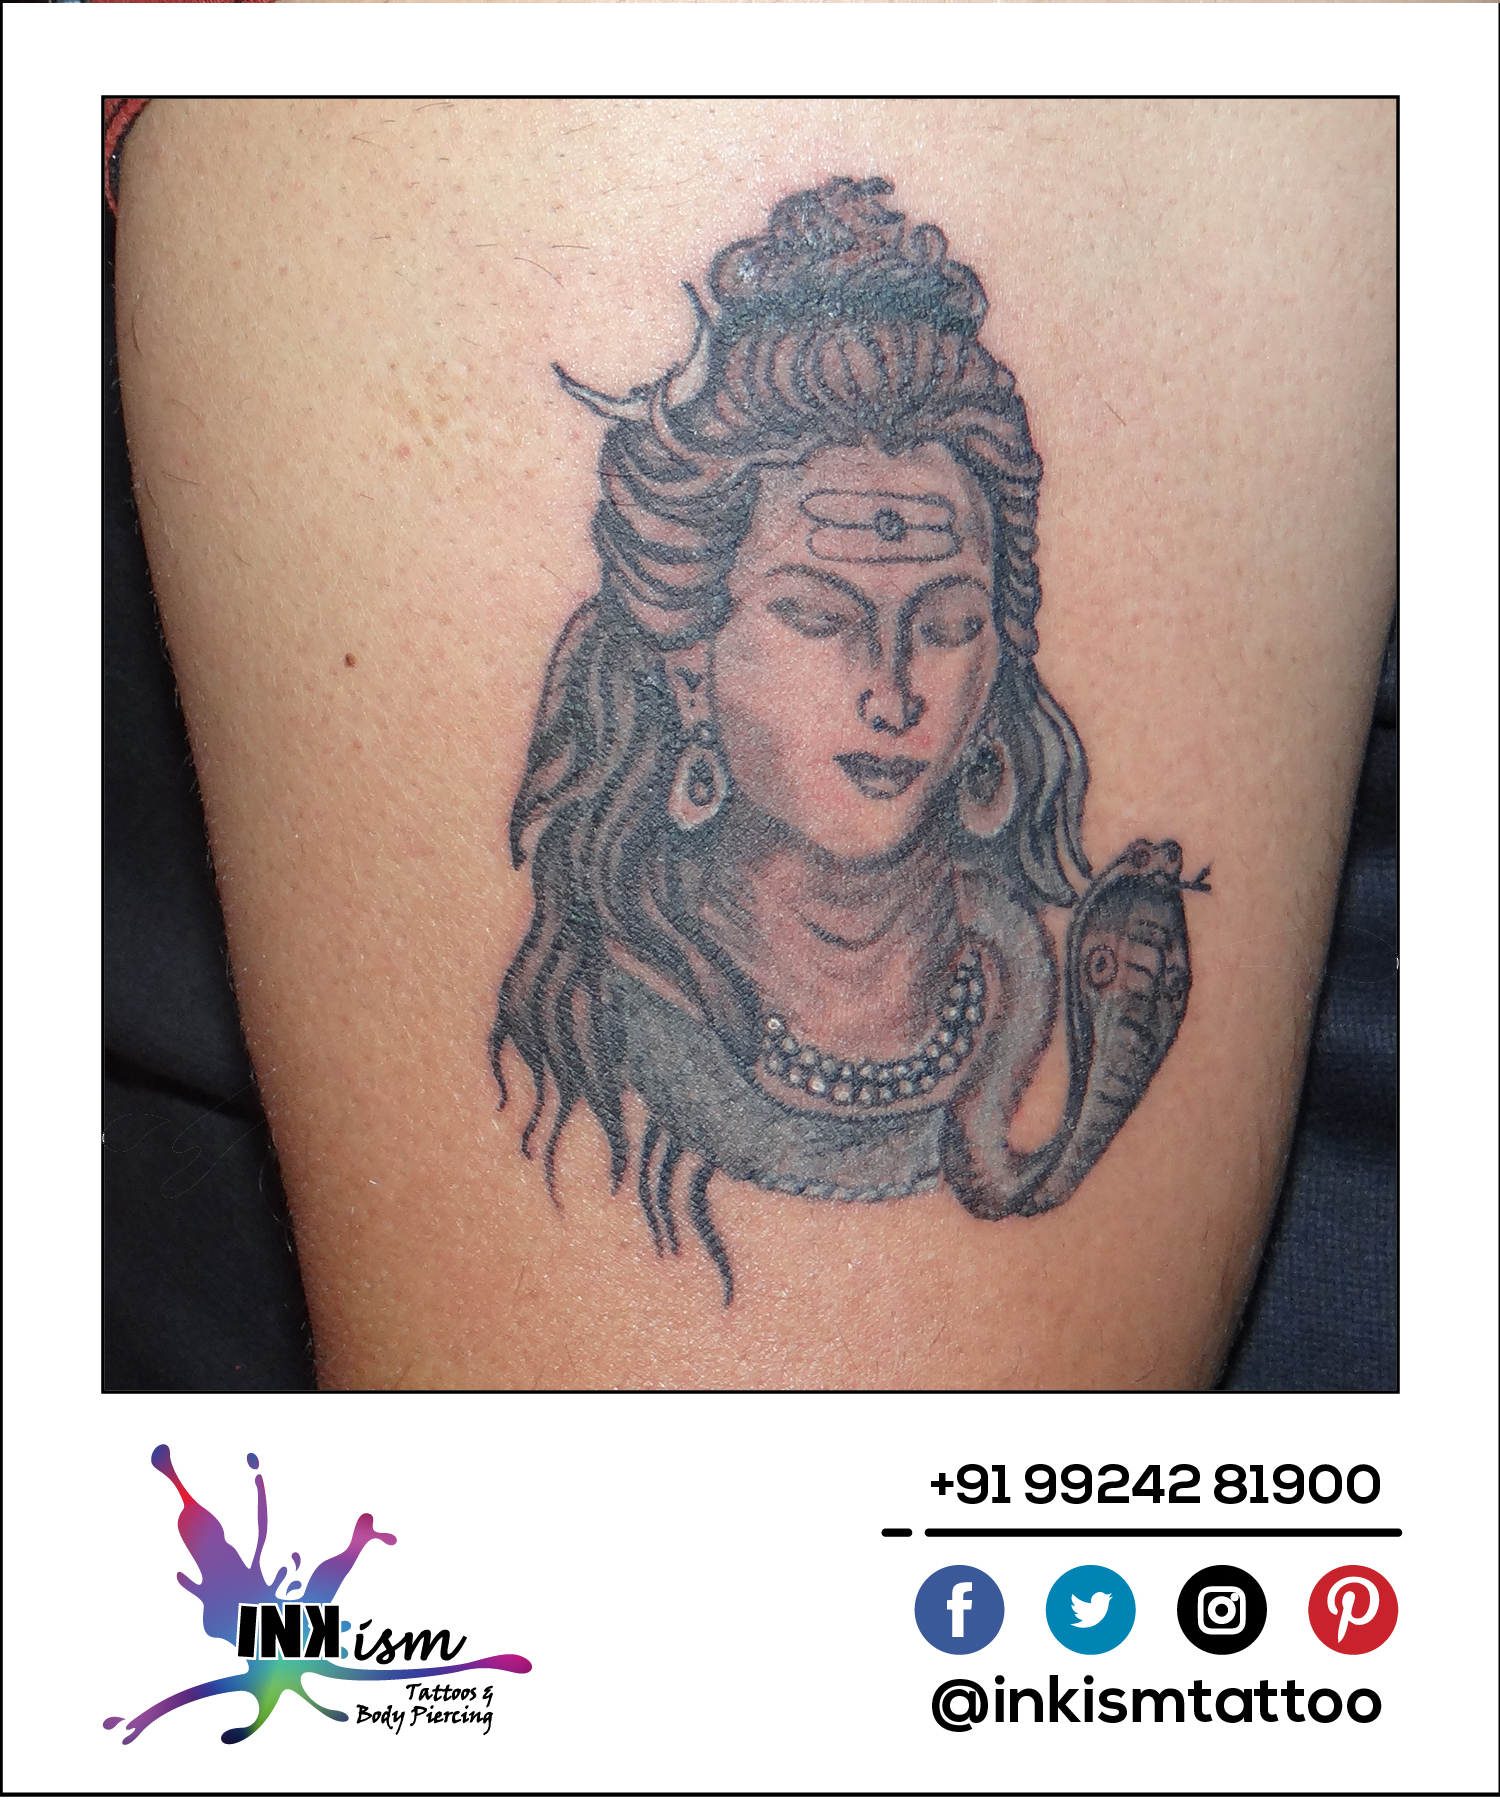 Mahadev tattoo, Shiva tattoo, Shiv tattoo, Bholenath tattoo, inkism tattoo and body piercing rajkot gujarat